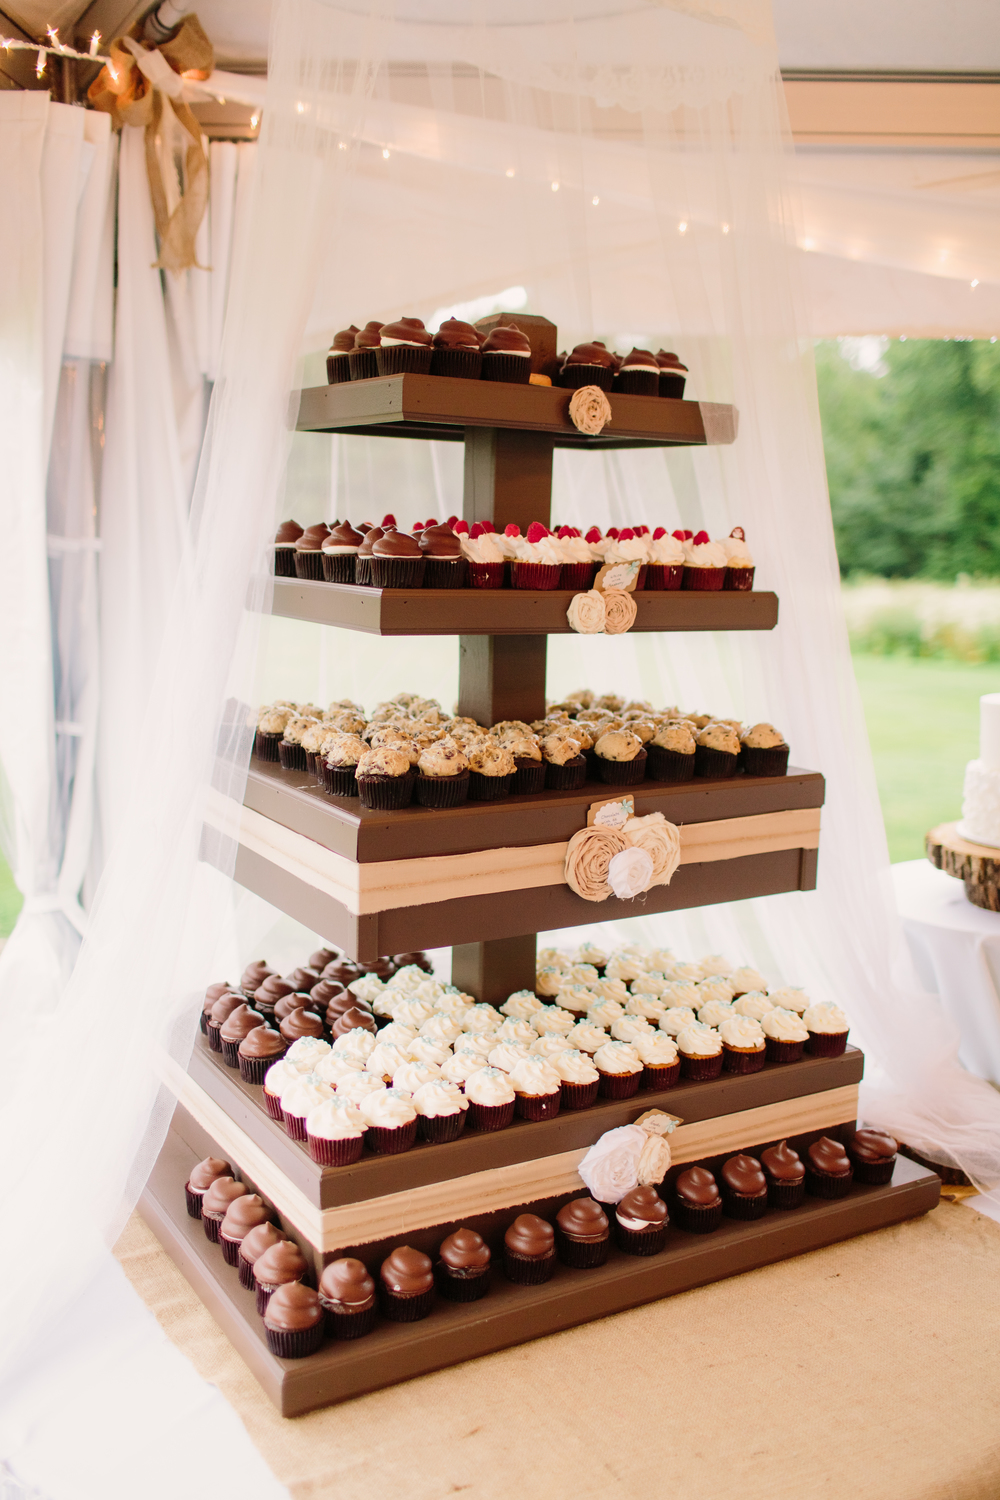 central-wisconsin-custom-cakes-weddings-events.jpg